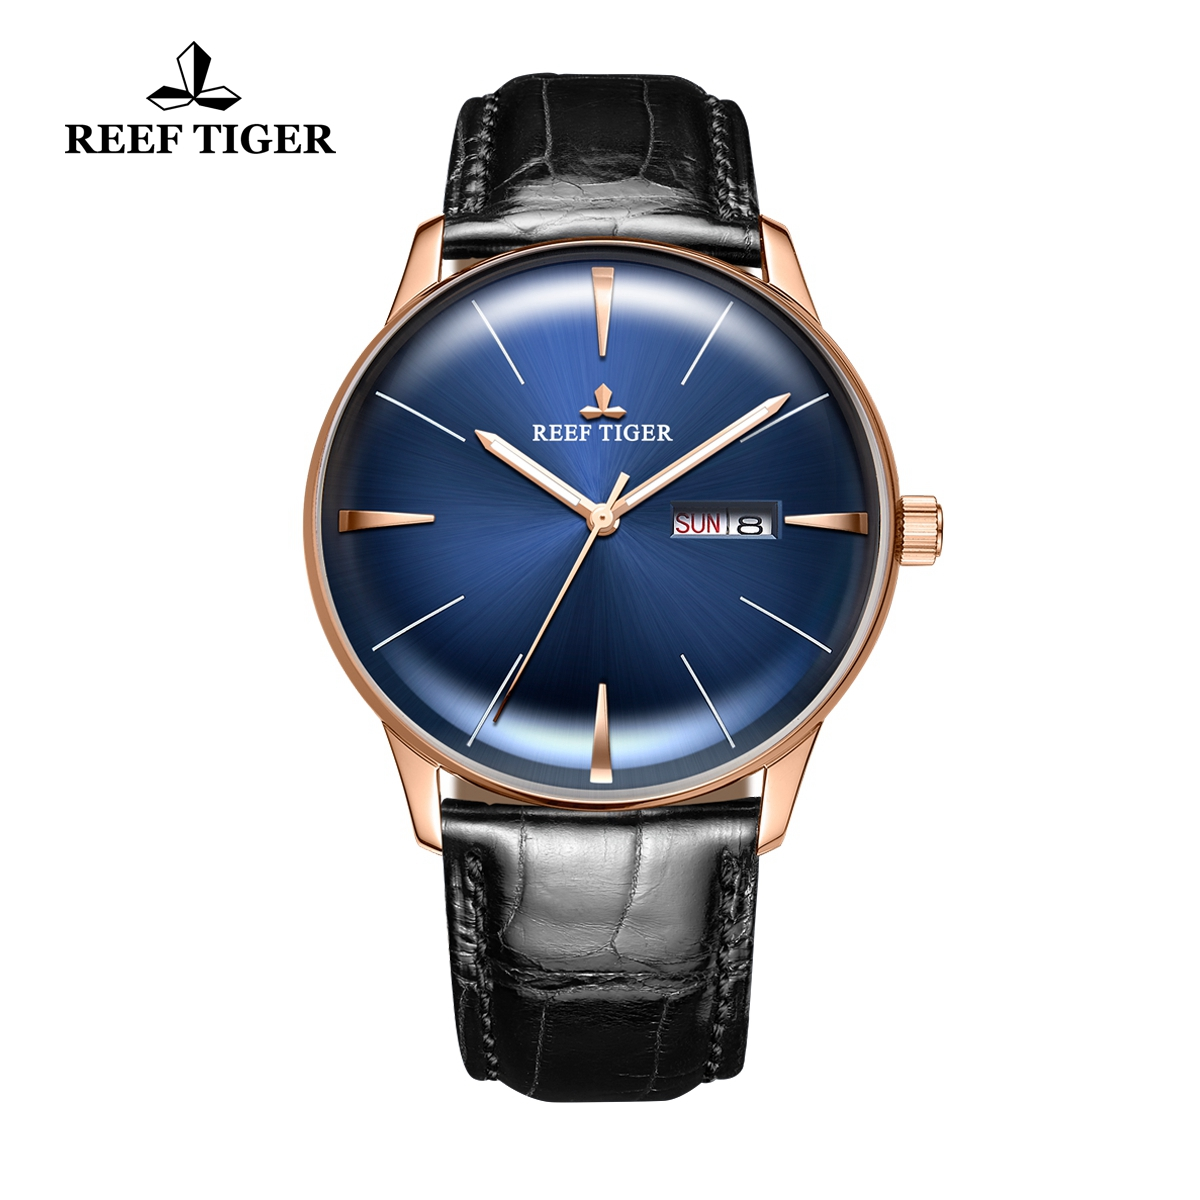 Reef Tiger Classic Heritor Luxury Men's Watch Blue Dial Leather Strap Automatic Watches RGA8238-PLB